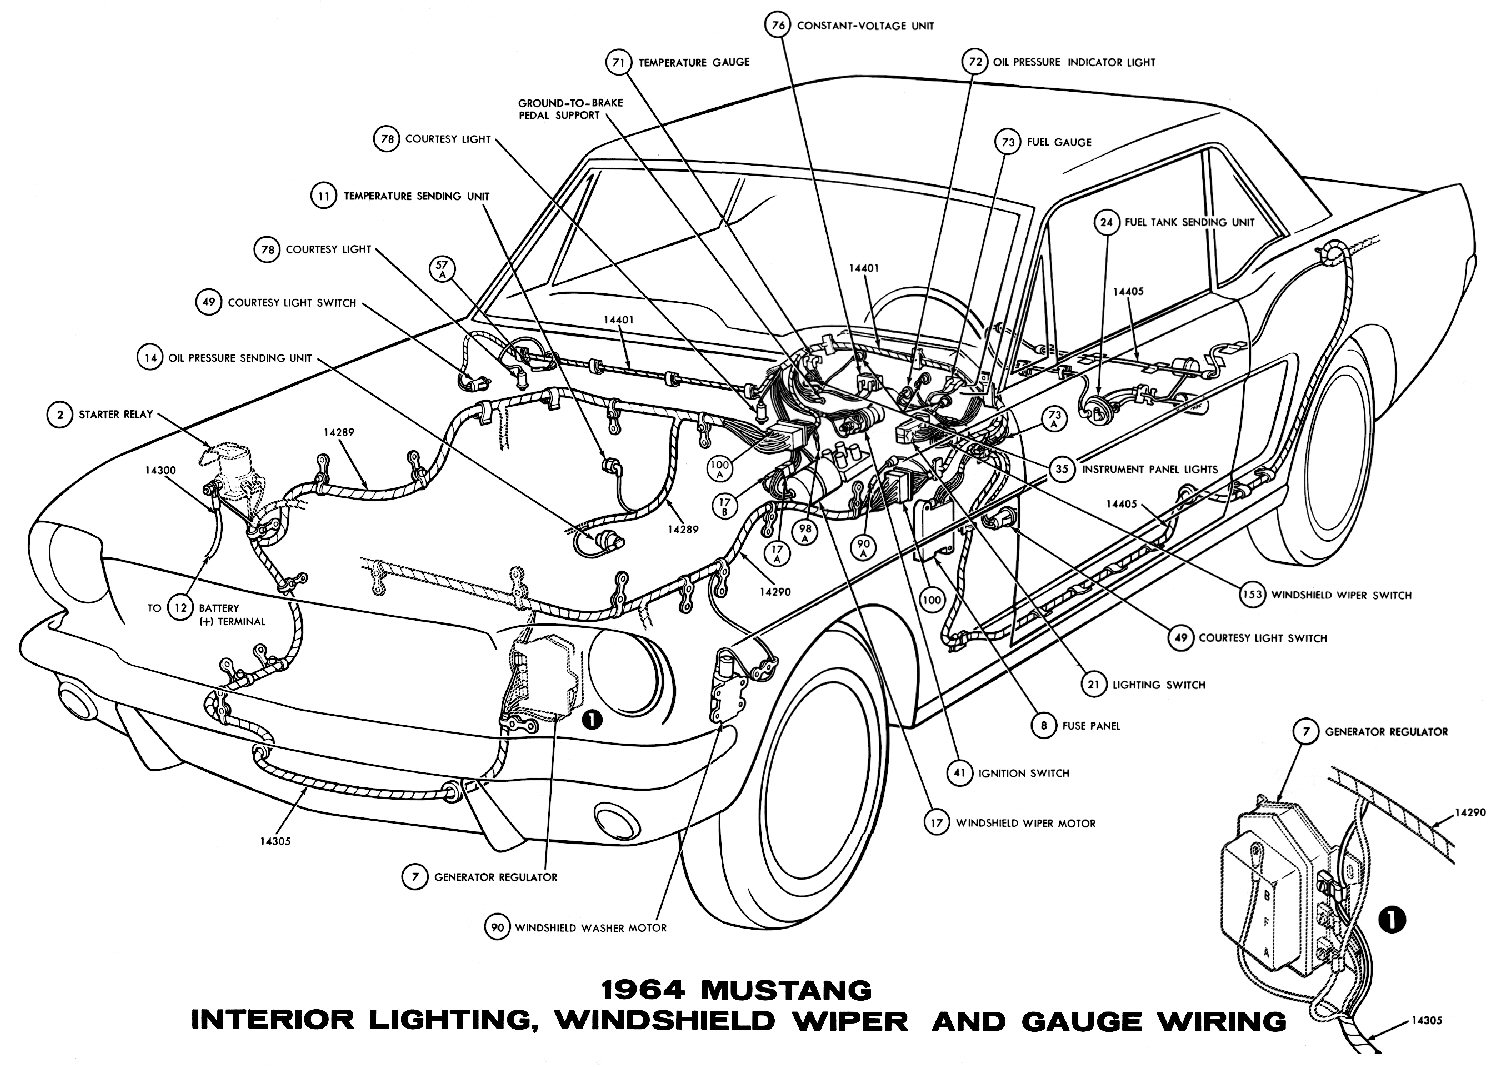 1964 mustang wiring diagrams average joe restoration 1964 mustang interior lights windshield wiper and gauges pictorial or schematic asfbconference2016 Choice Image